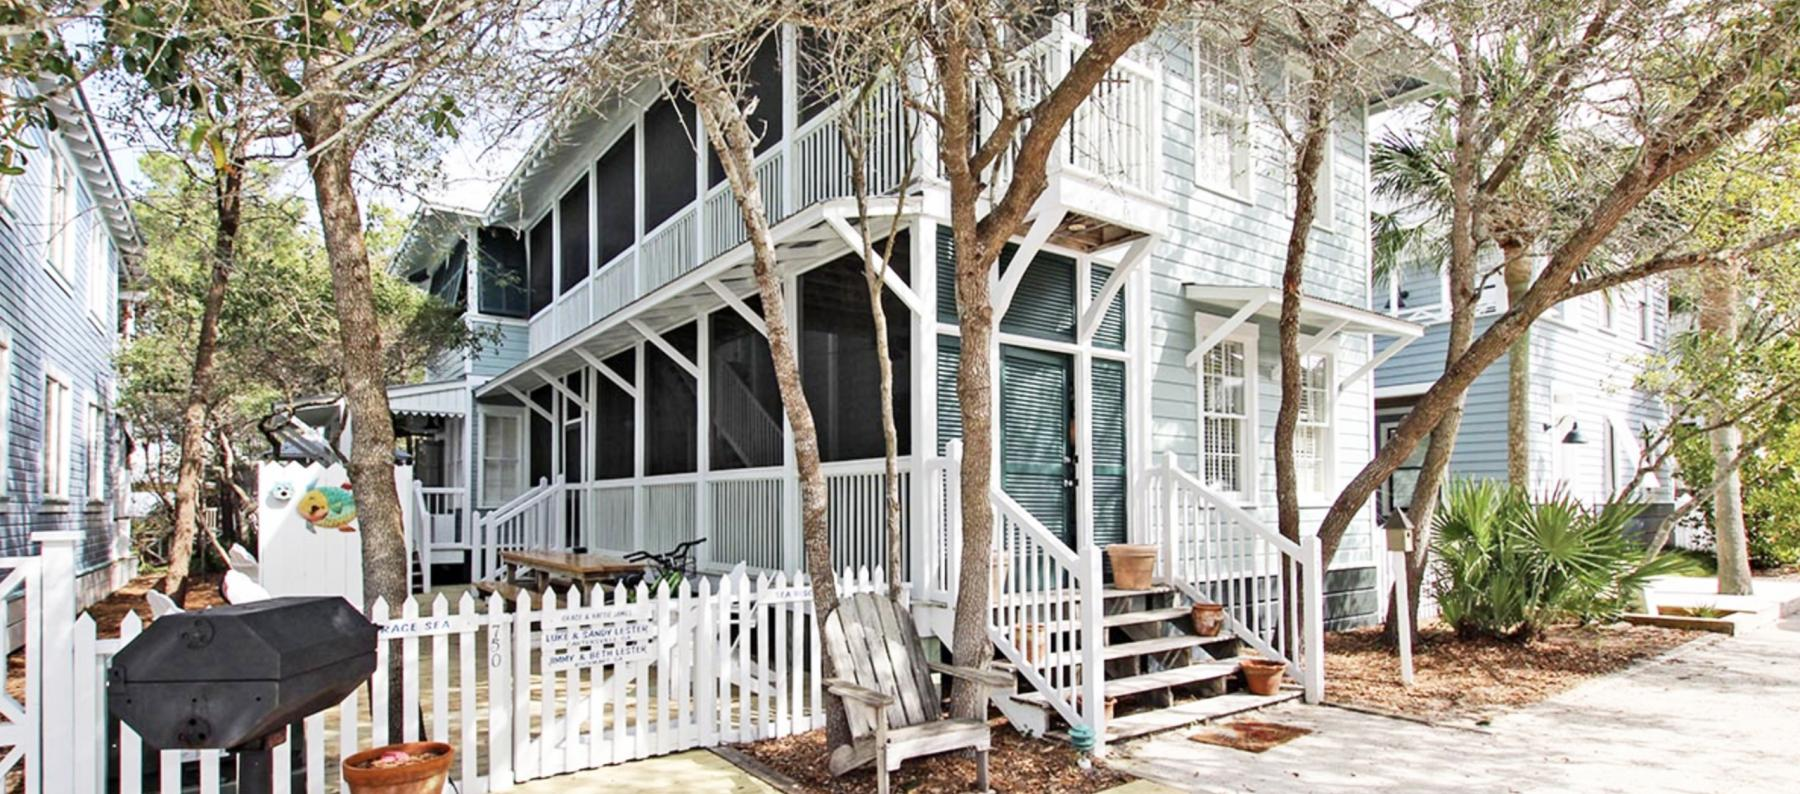 Seabiscuit Cottage in Seaside, Florida